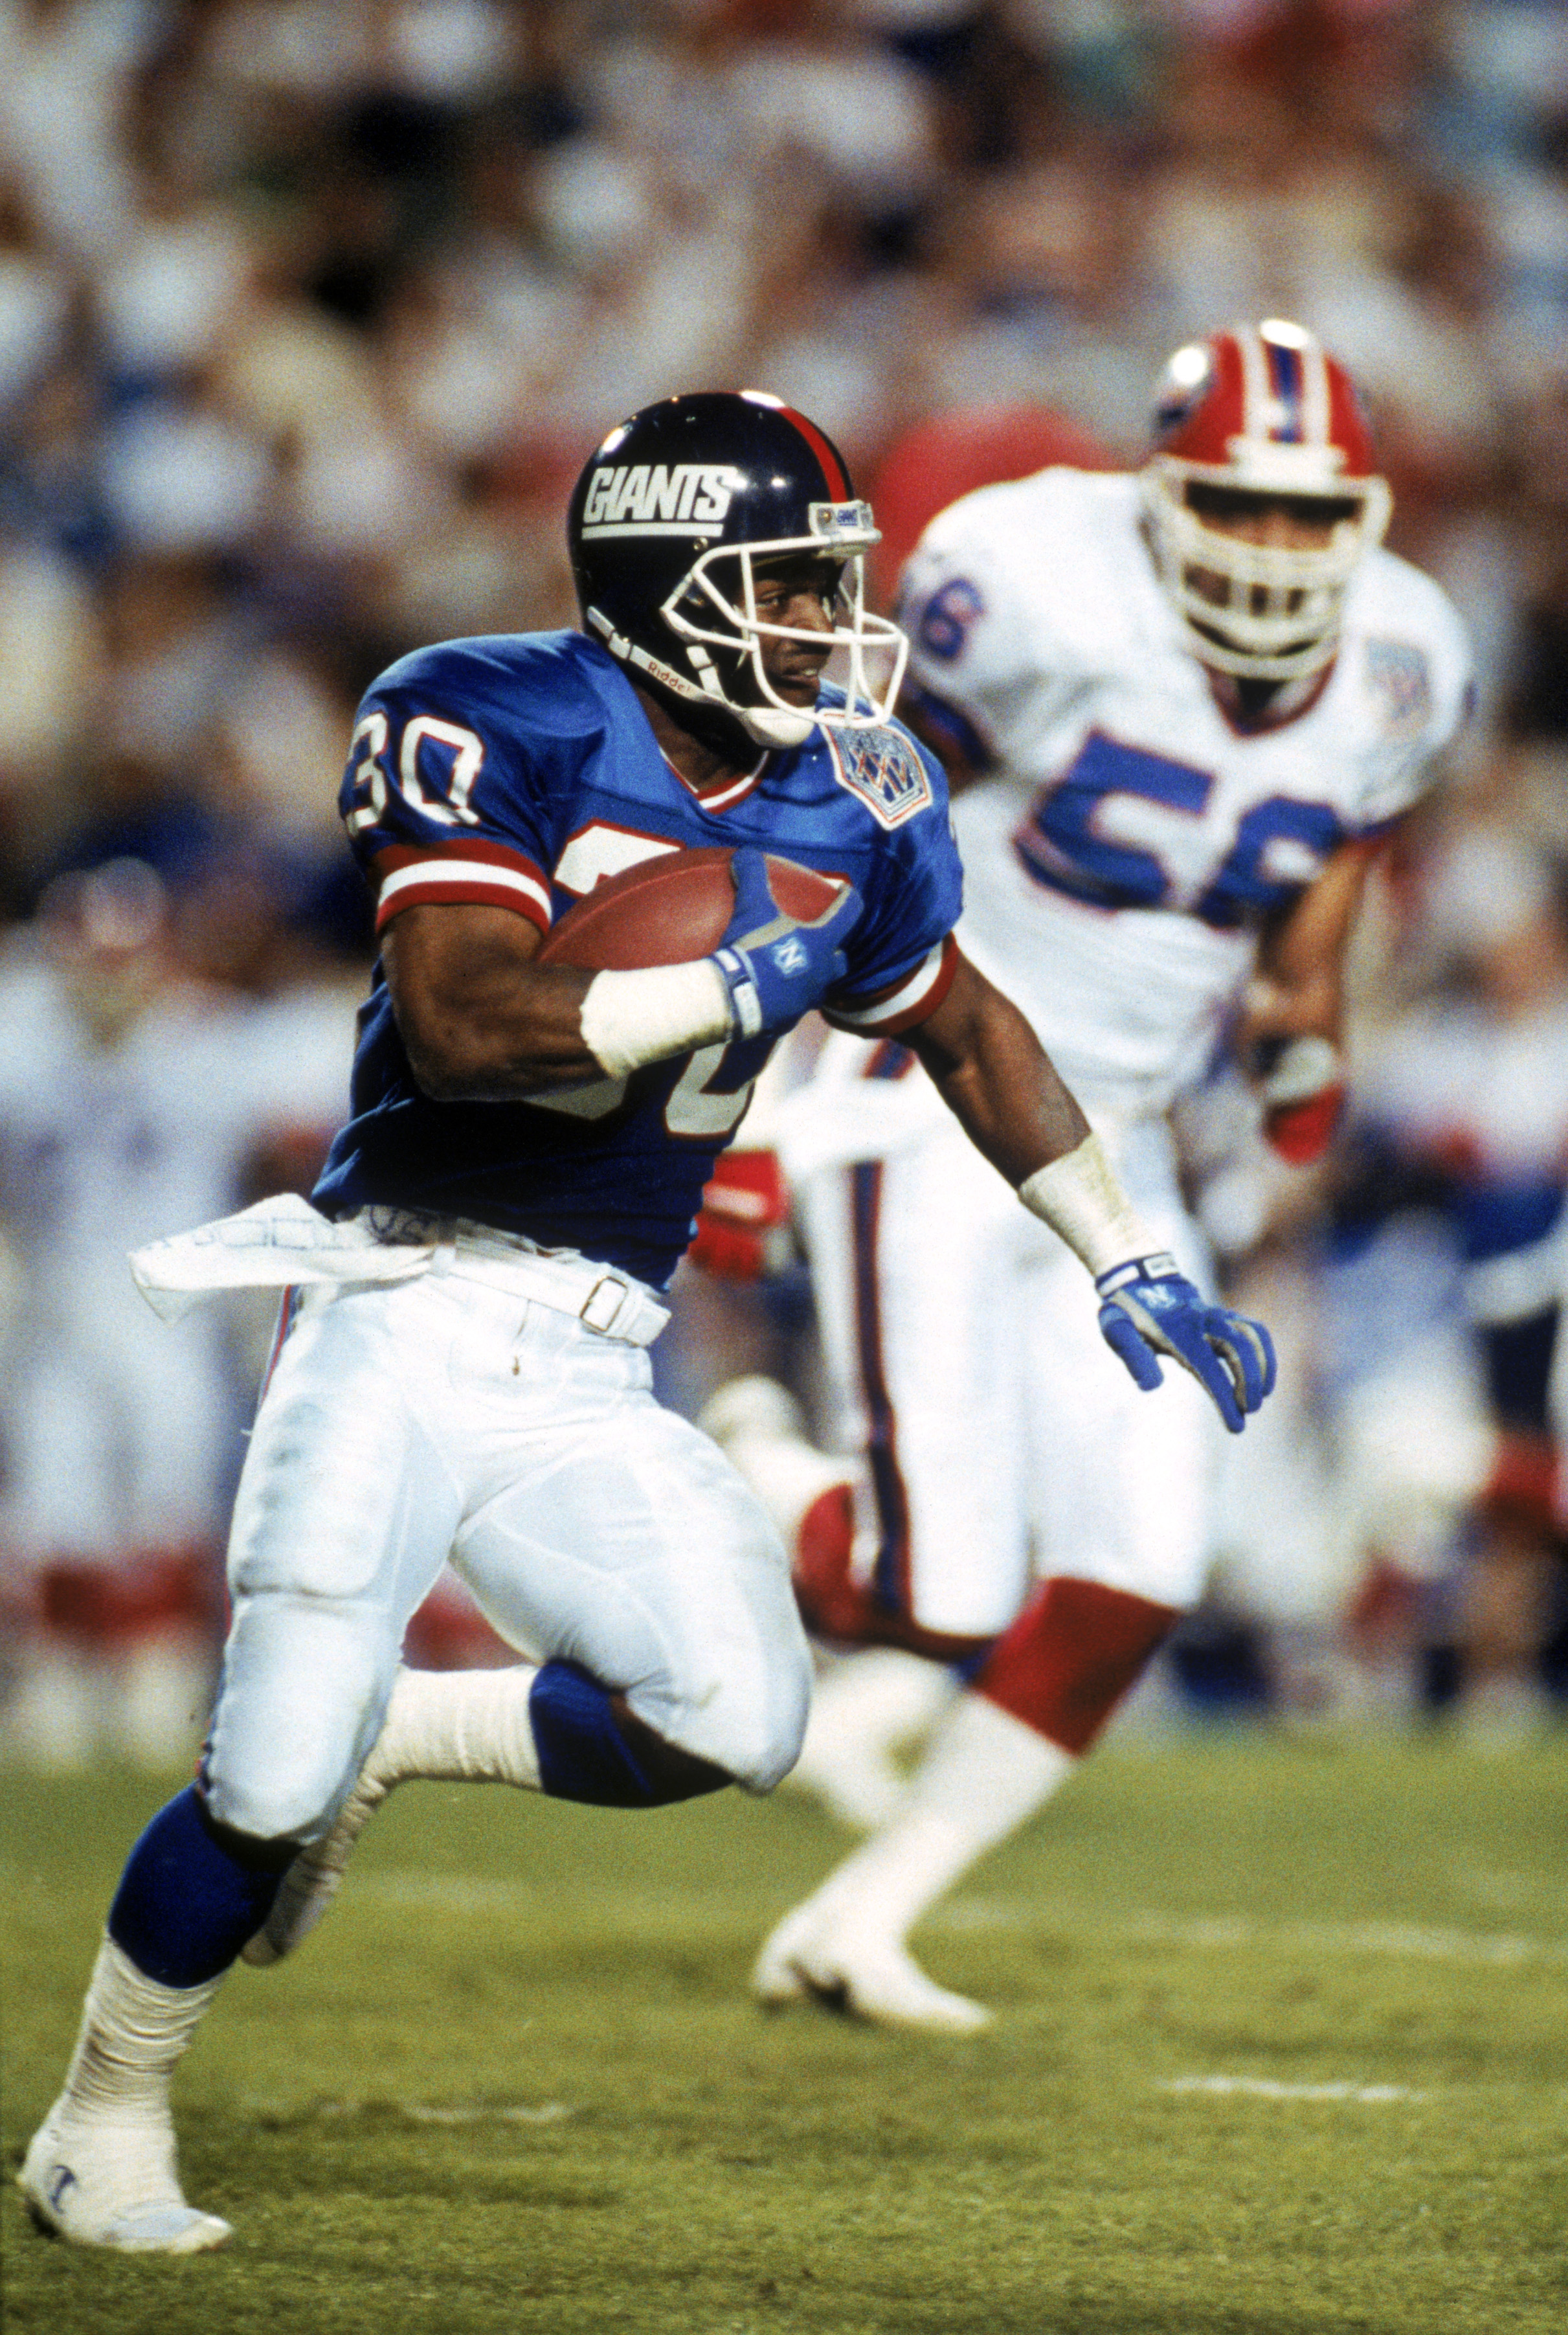 TAMPA, FL - JANUARY 27:  Kick returner Dave Meggett #30 of the New York Giants carries the ball against the Buffalo Bills during Super Bowl XXV at Tampa Stadium on January 27, 1991 in Tampa, Florida. The Giants defeated the Bills 20-19.  (Photo by George